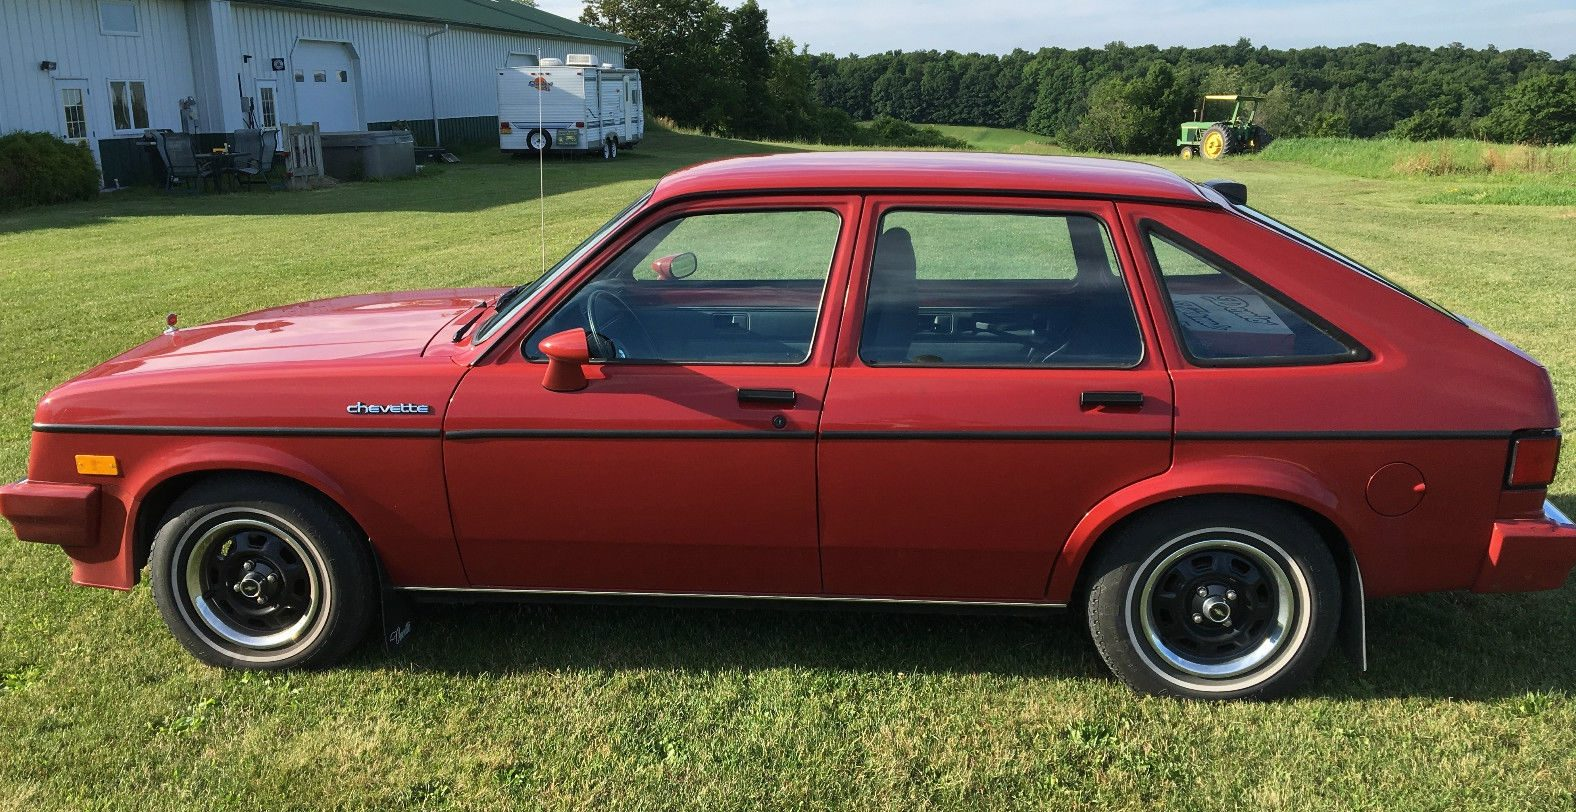 Forty years later, the Chevette can still get better milea ...